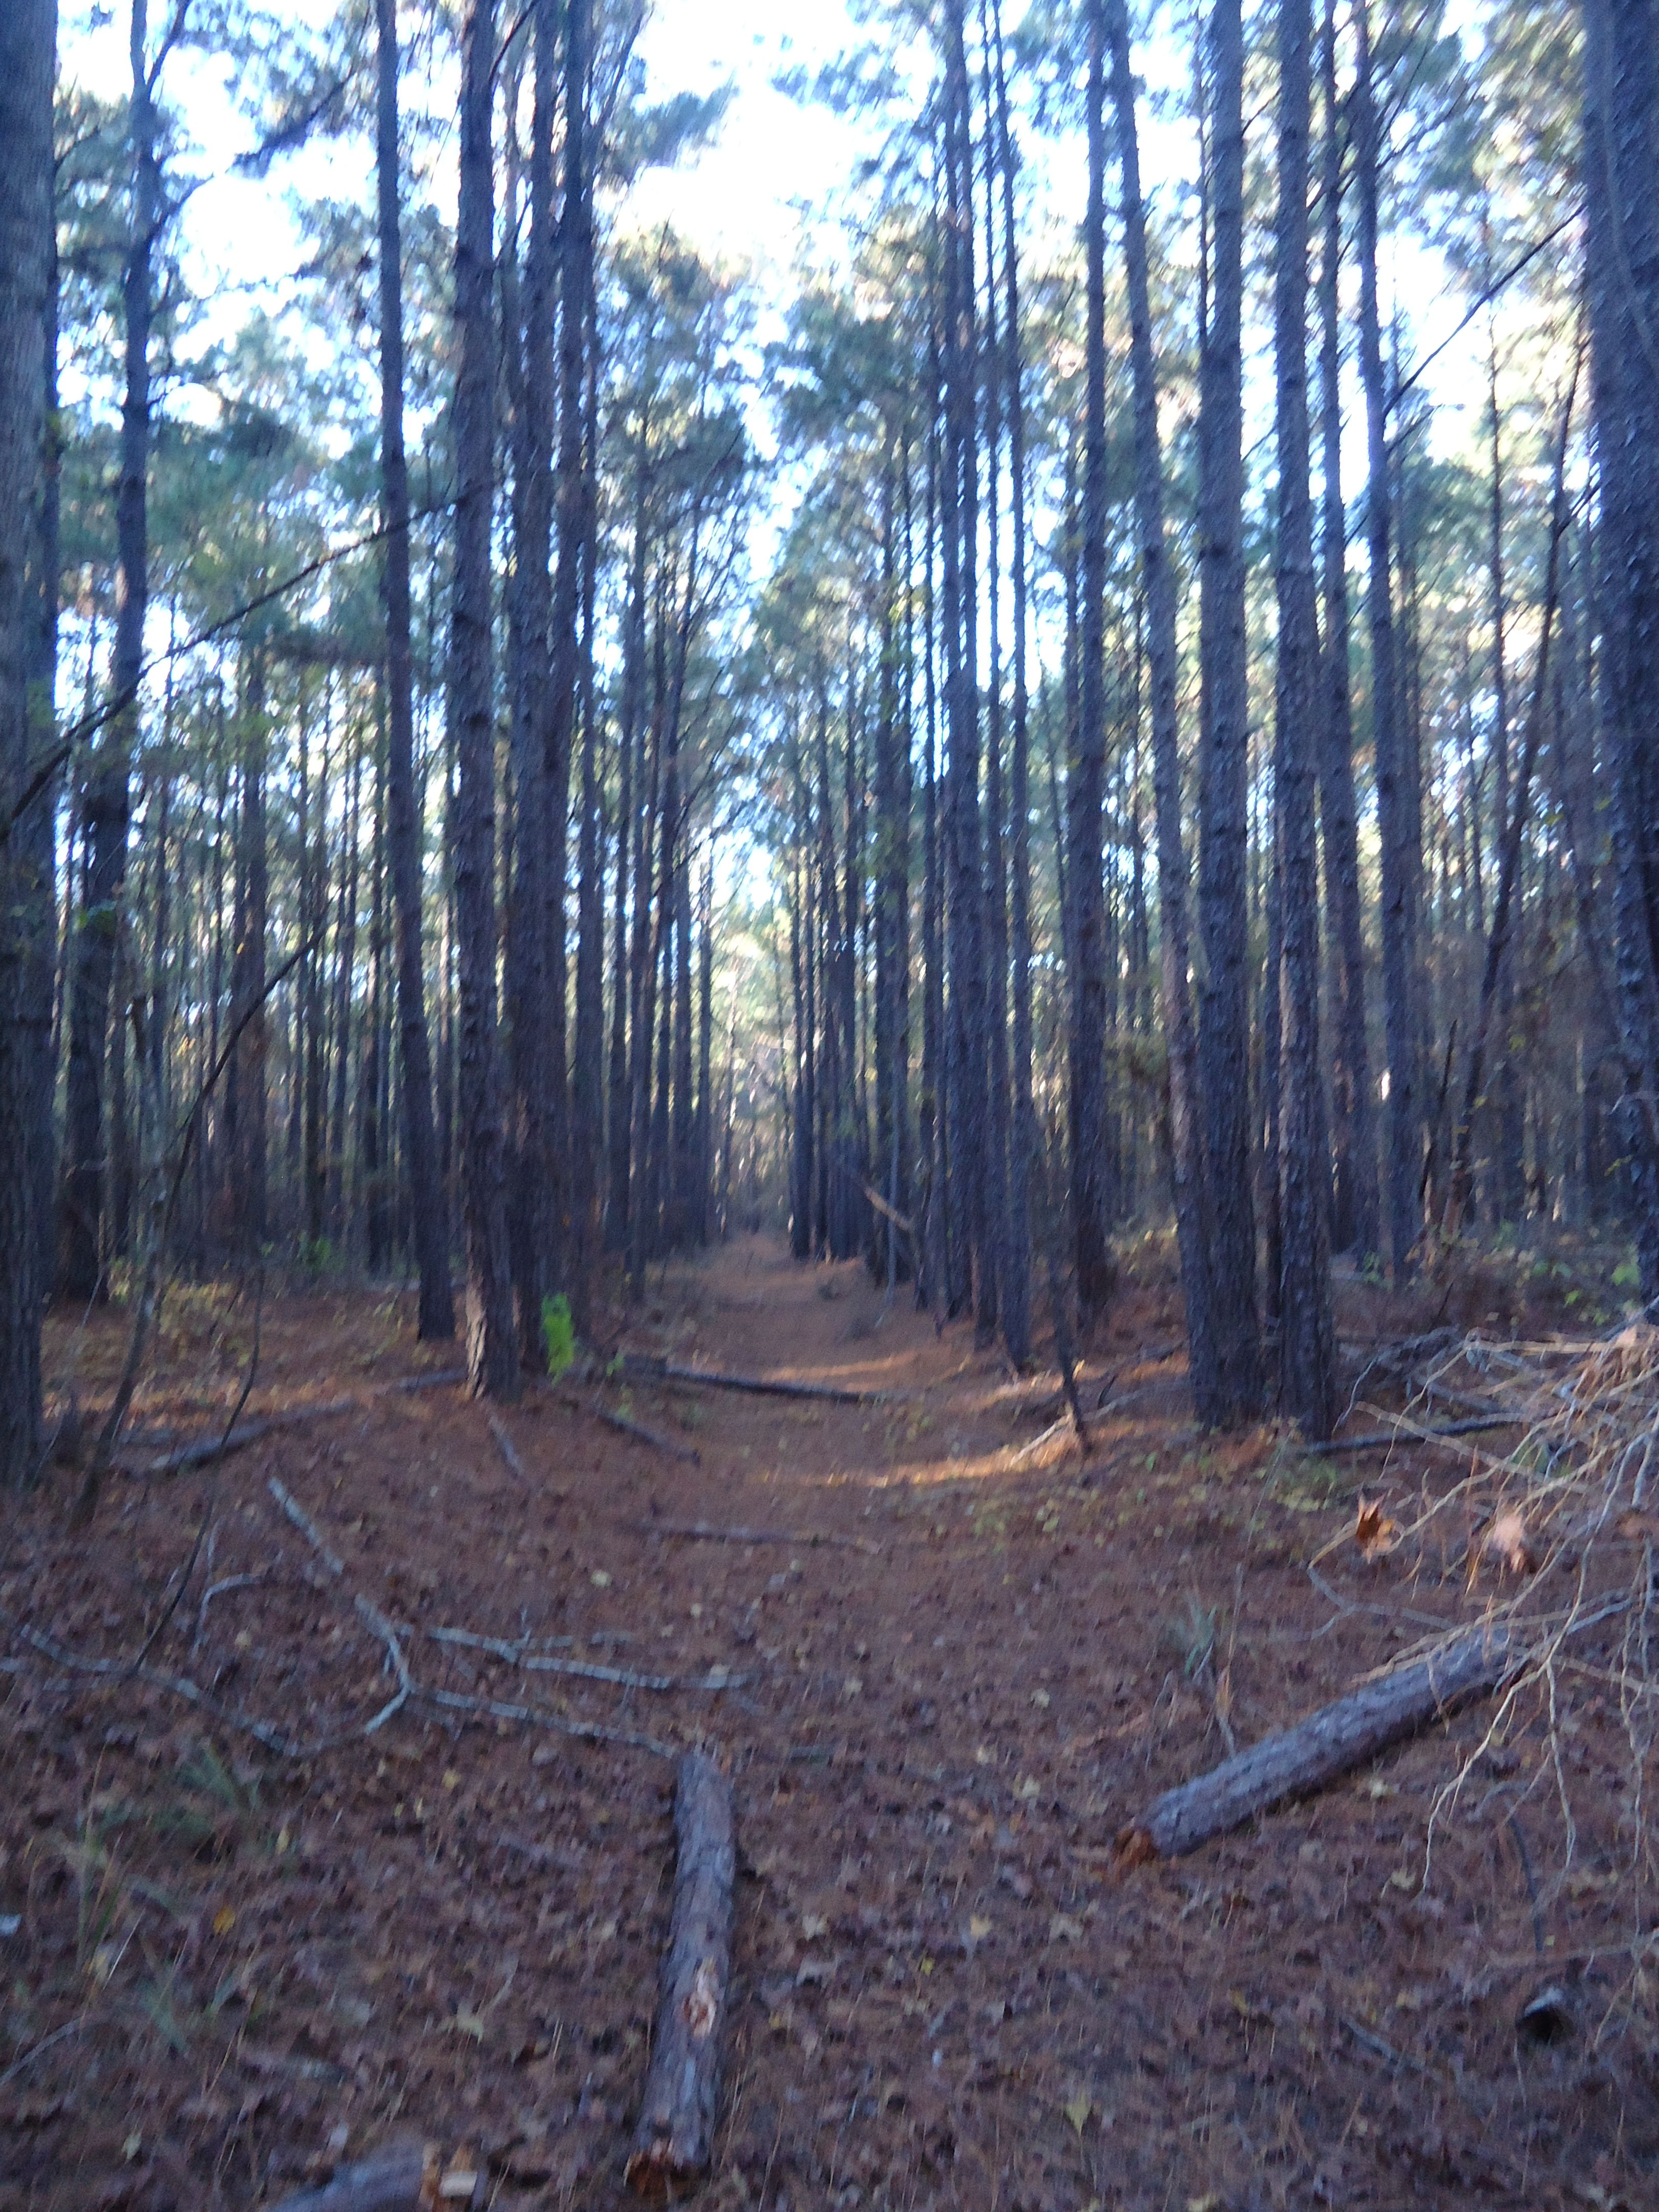 trail we rode four wheelers on in the woods, it was sooo pretty!